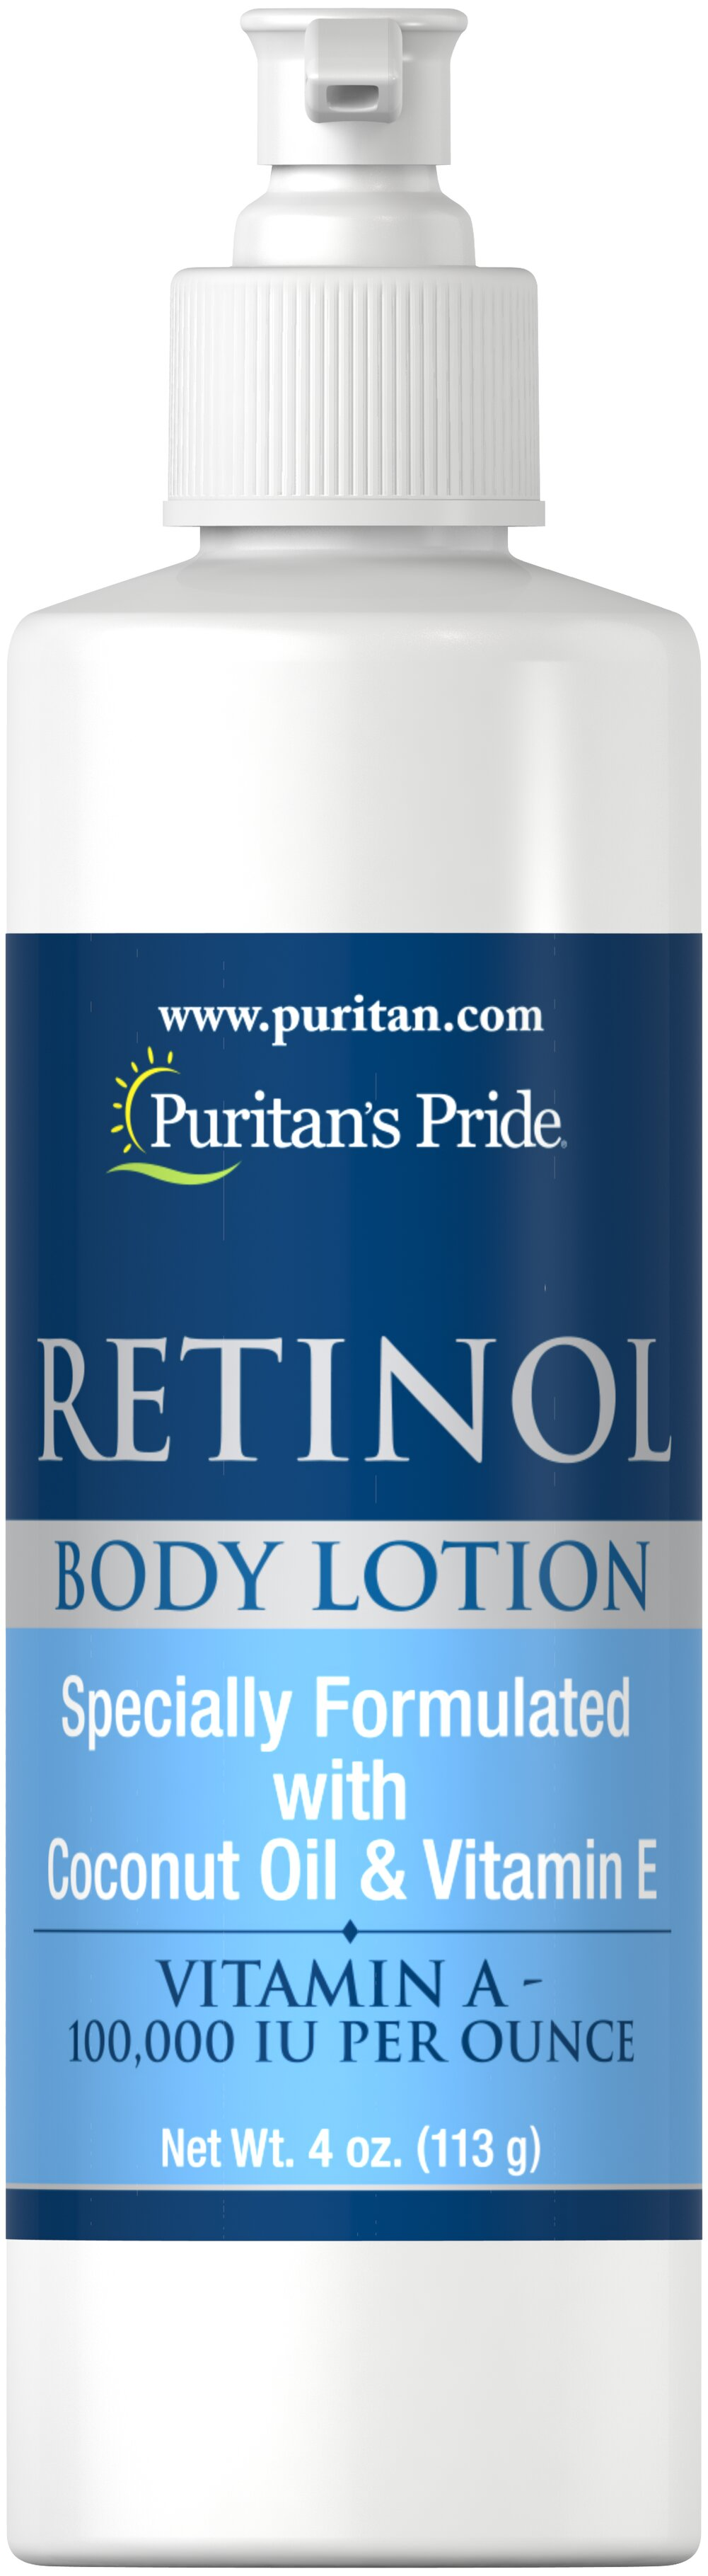 Retinol Body Lotion (Vitamin A 100,000 IU Per Ounce) <p>Vitamin A 100,000 IU per Ounce </p><p>Vitamin A is probably the most important skin vitamin for the appearance of the skin. Vitamin A is also one of the few vitamins that can be absorbed through the skin to provide direct benefits. Let your skin take advantage of the benefits of Vitamin A Lotion.</p> 4 oz Lotion 100000 IU $13.99